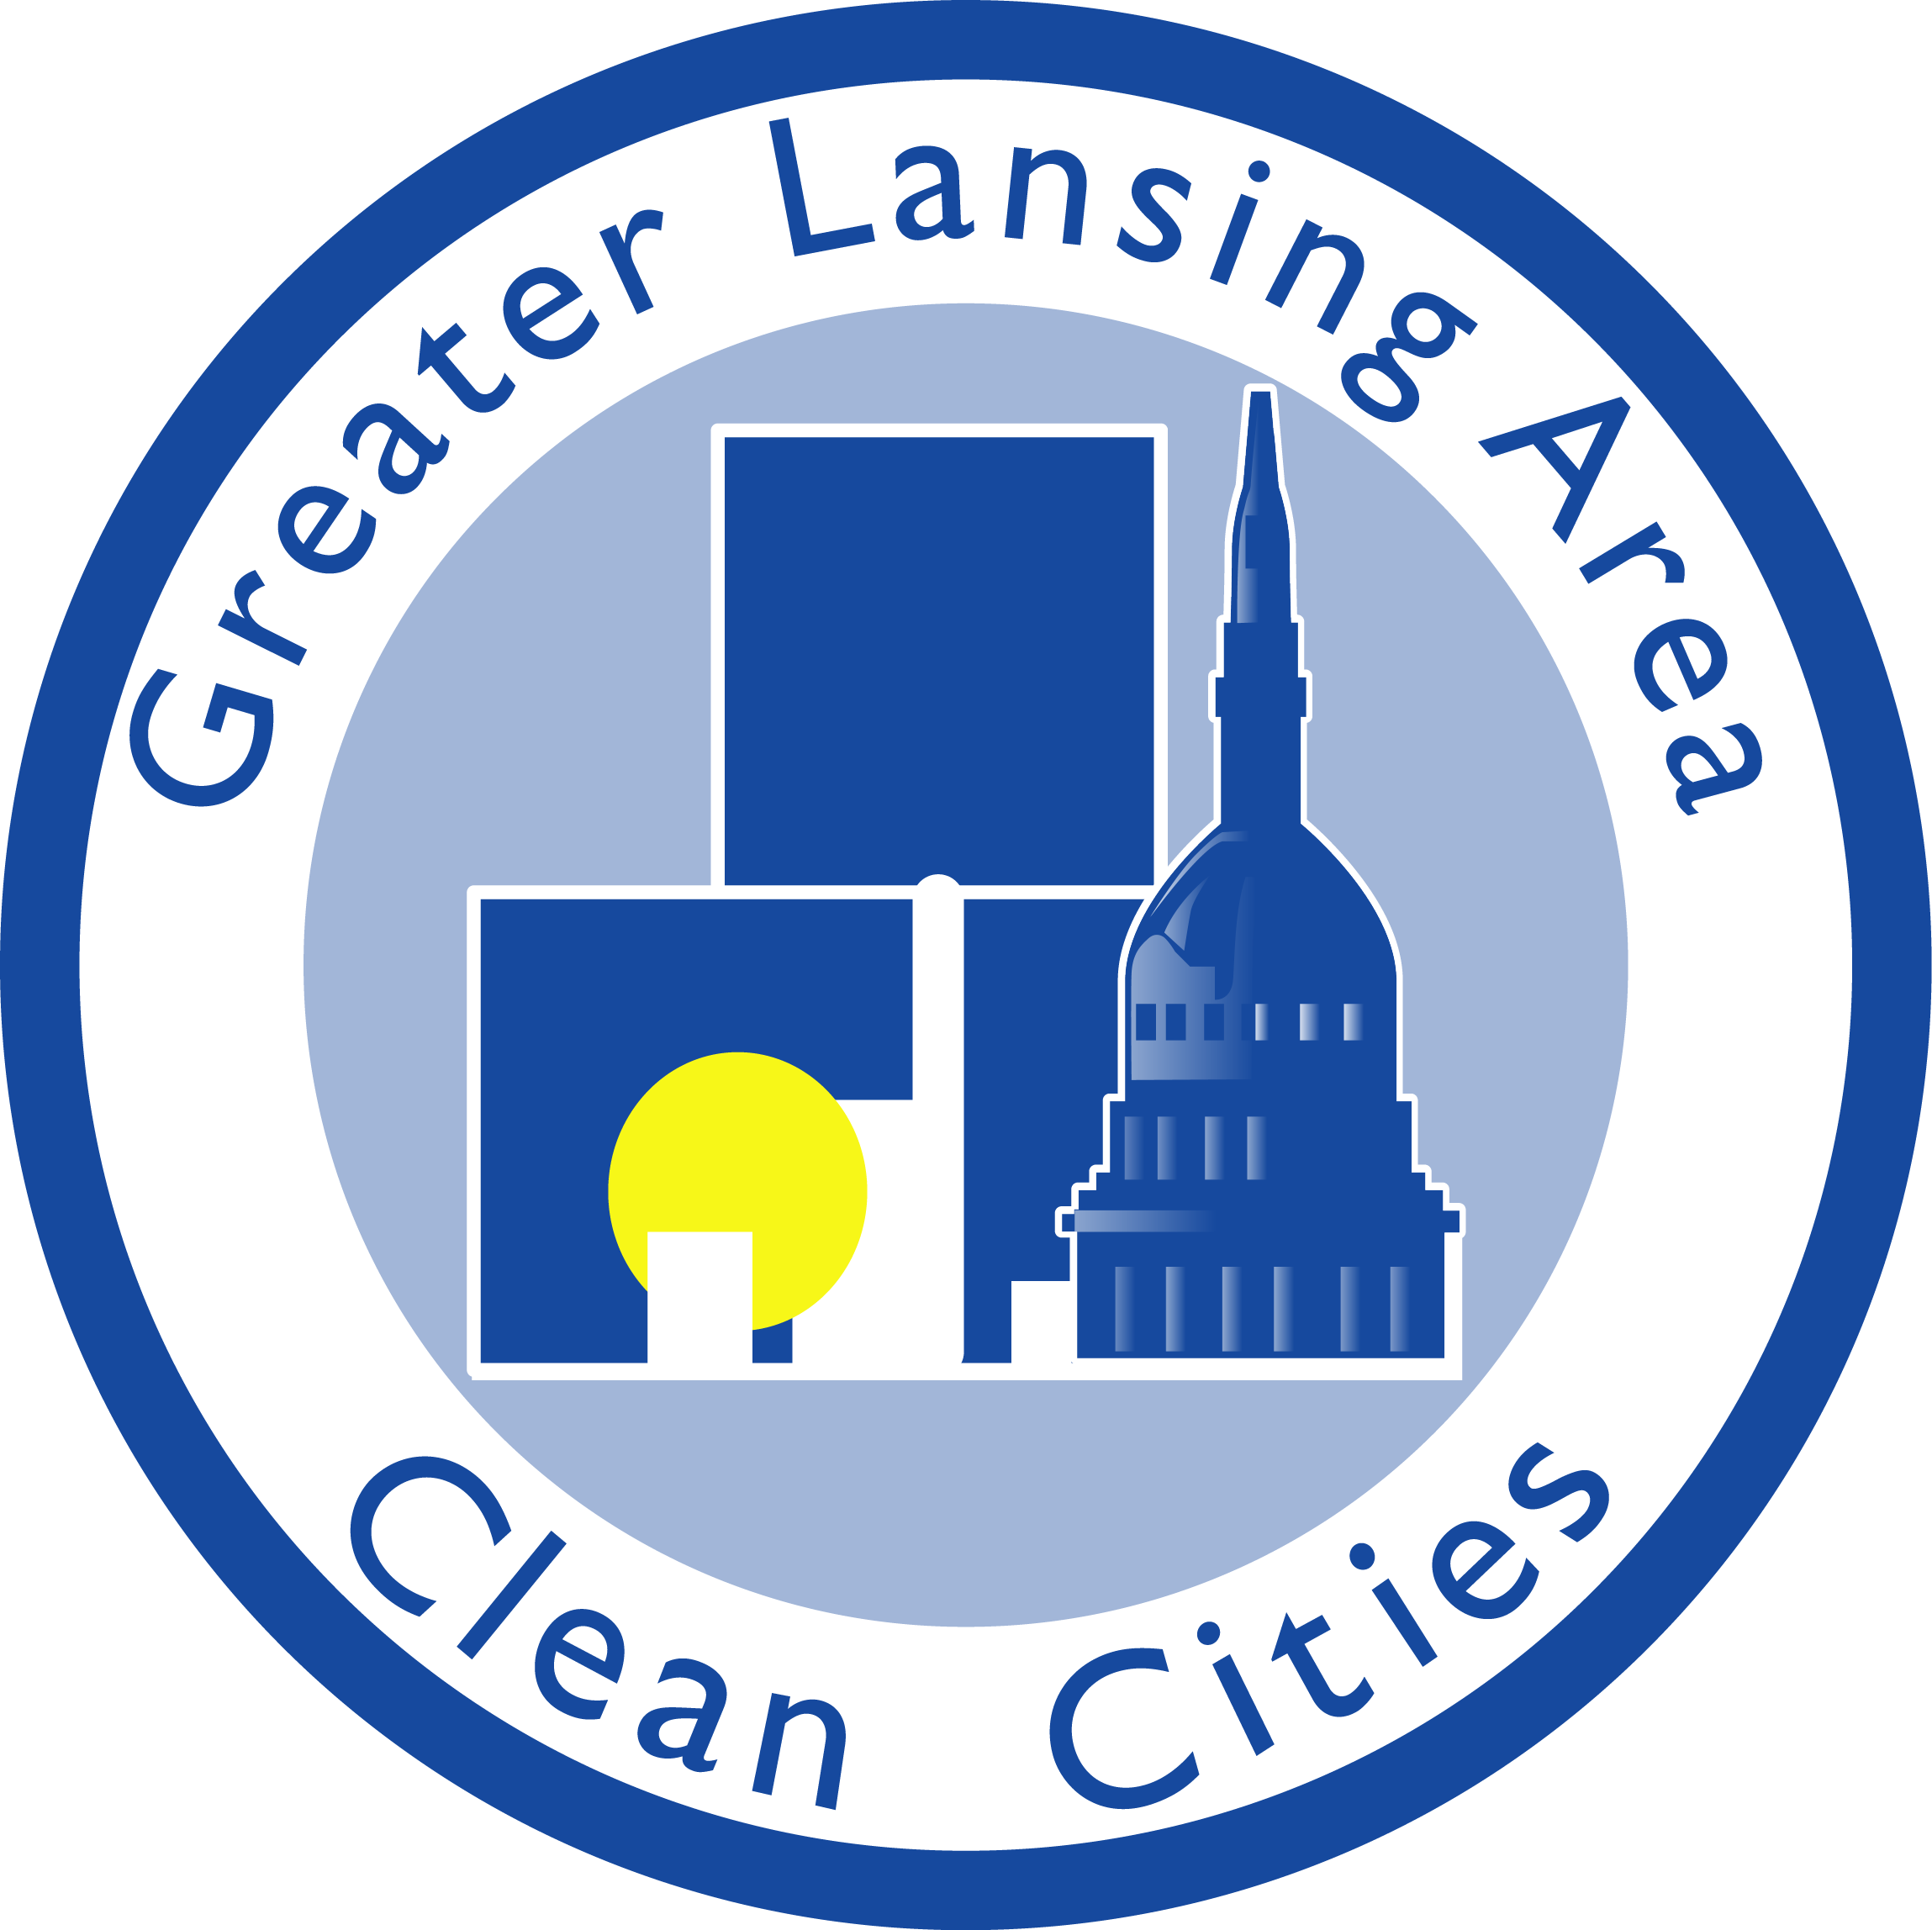 Michigan Clean Cities